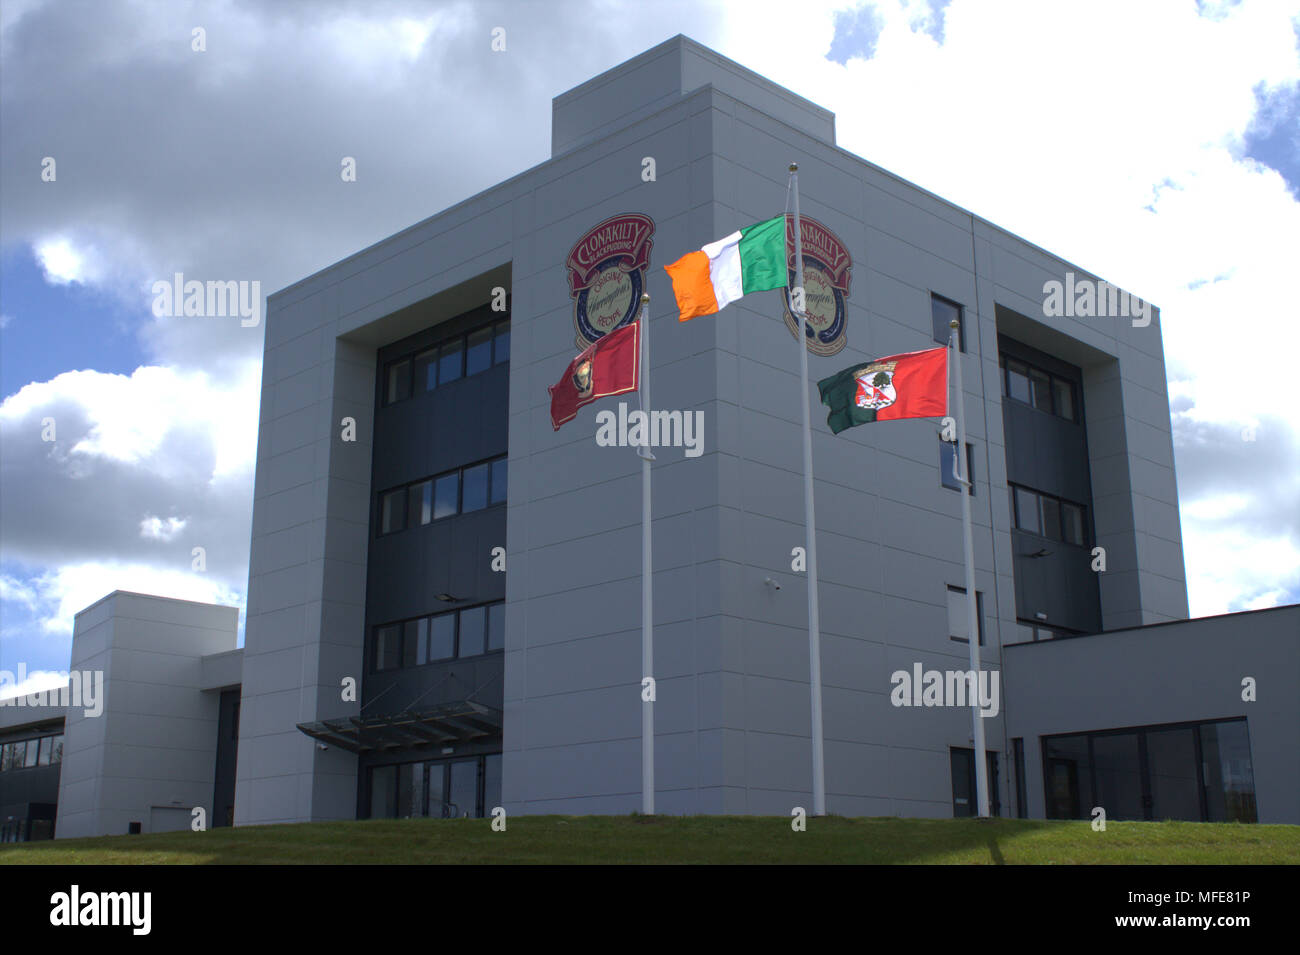 new-headquarters-building-and-food-production-facility-for-the-iconic-clonakilty-black-pudding-brand-the-most-famous-black-pudding-name-in-ireland-MFE81P.jpg